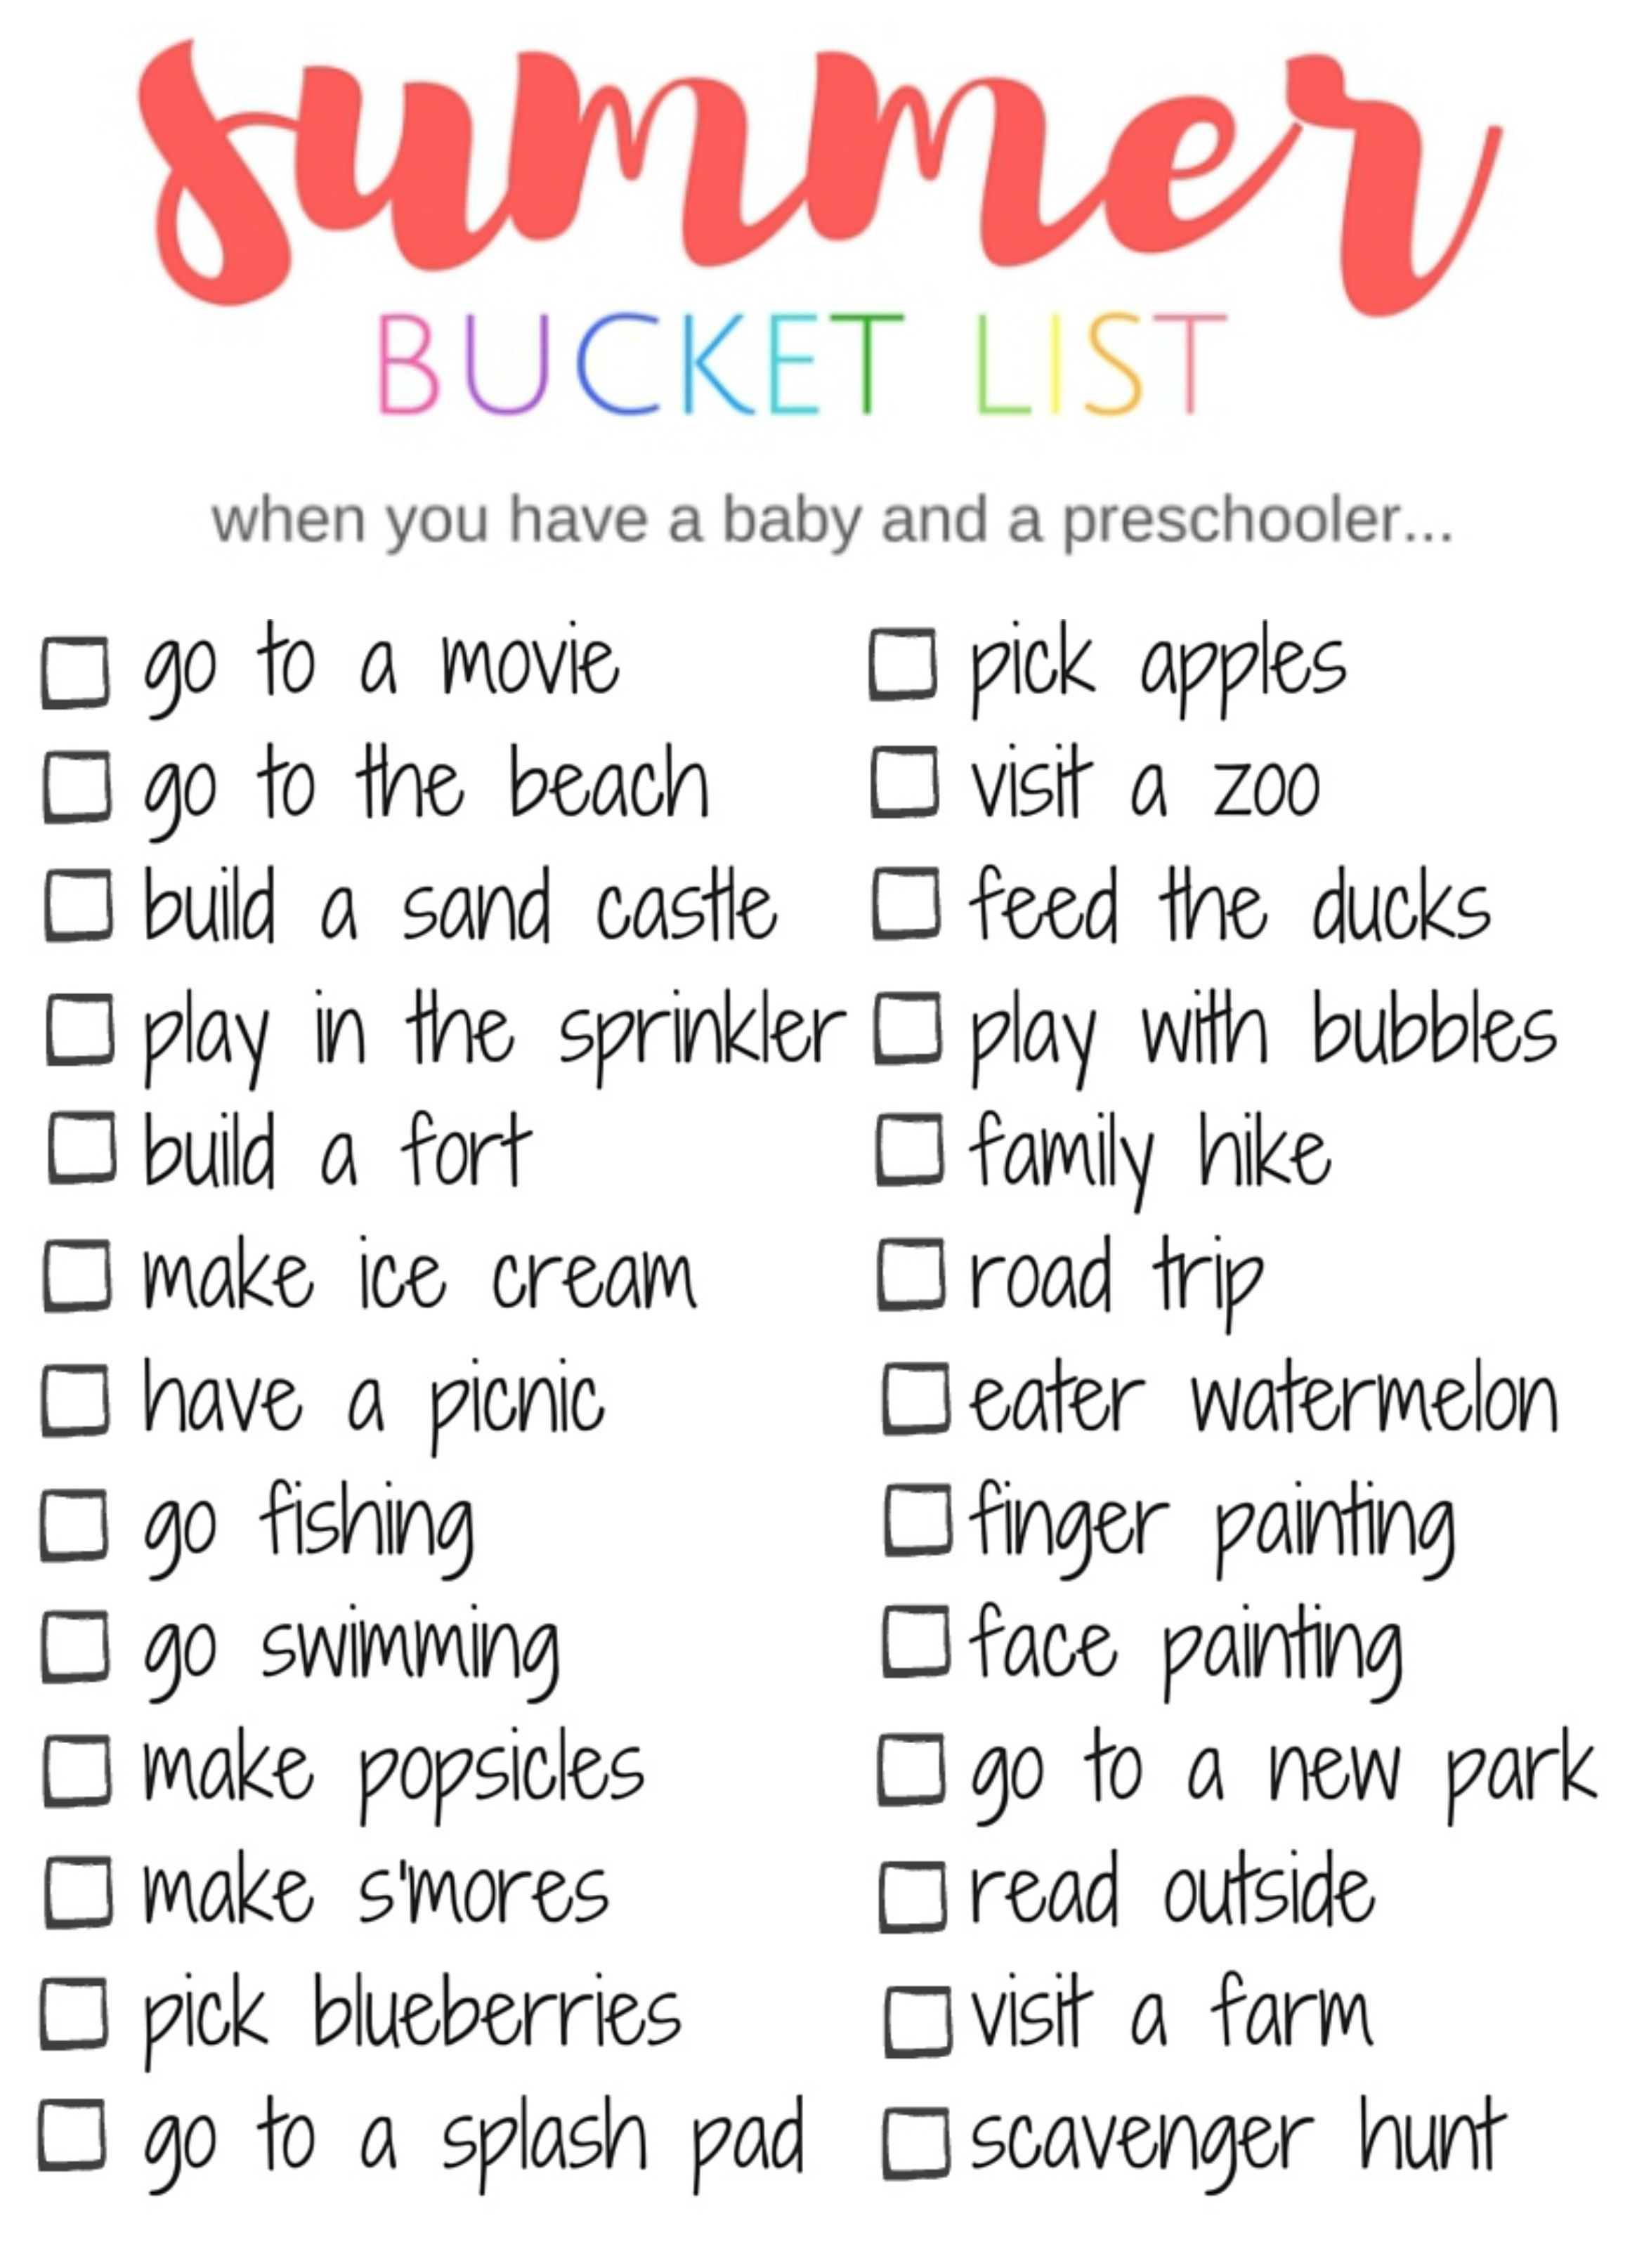 Summer Bucket List When You Have A Baby And A Preschooler